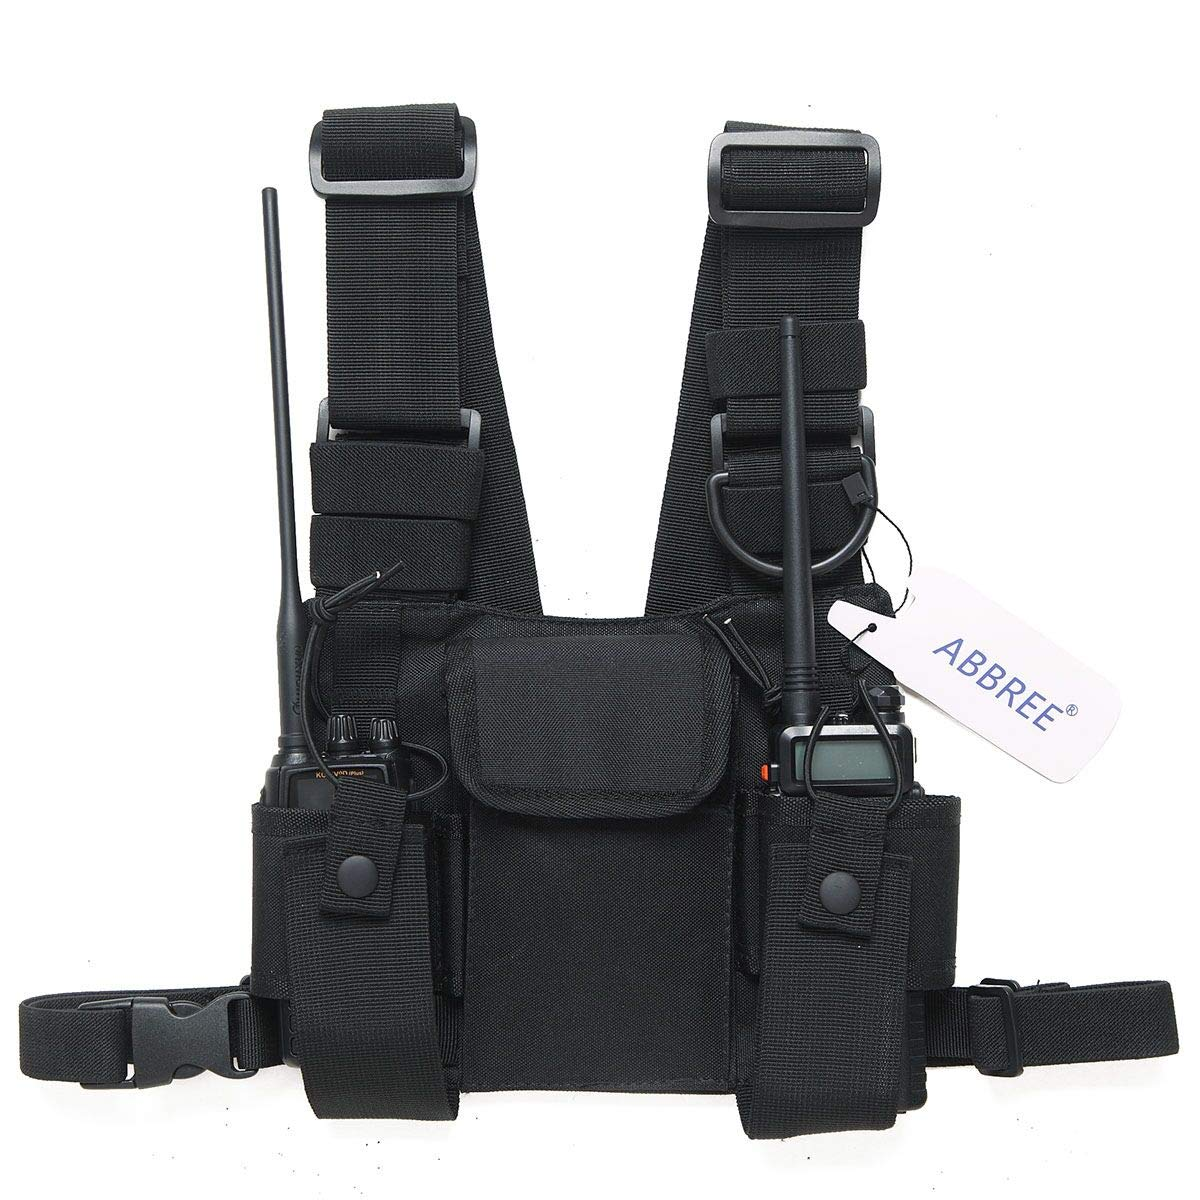 Abbree Front Pack Pouch Holster Vest Rig Chest Bag Carry Case for Baofeng Two Way Radio UV-5R BF-F8HP UV-82 TYT Motorola Midland (Black)